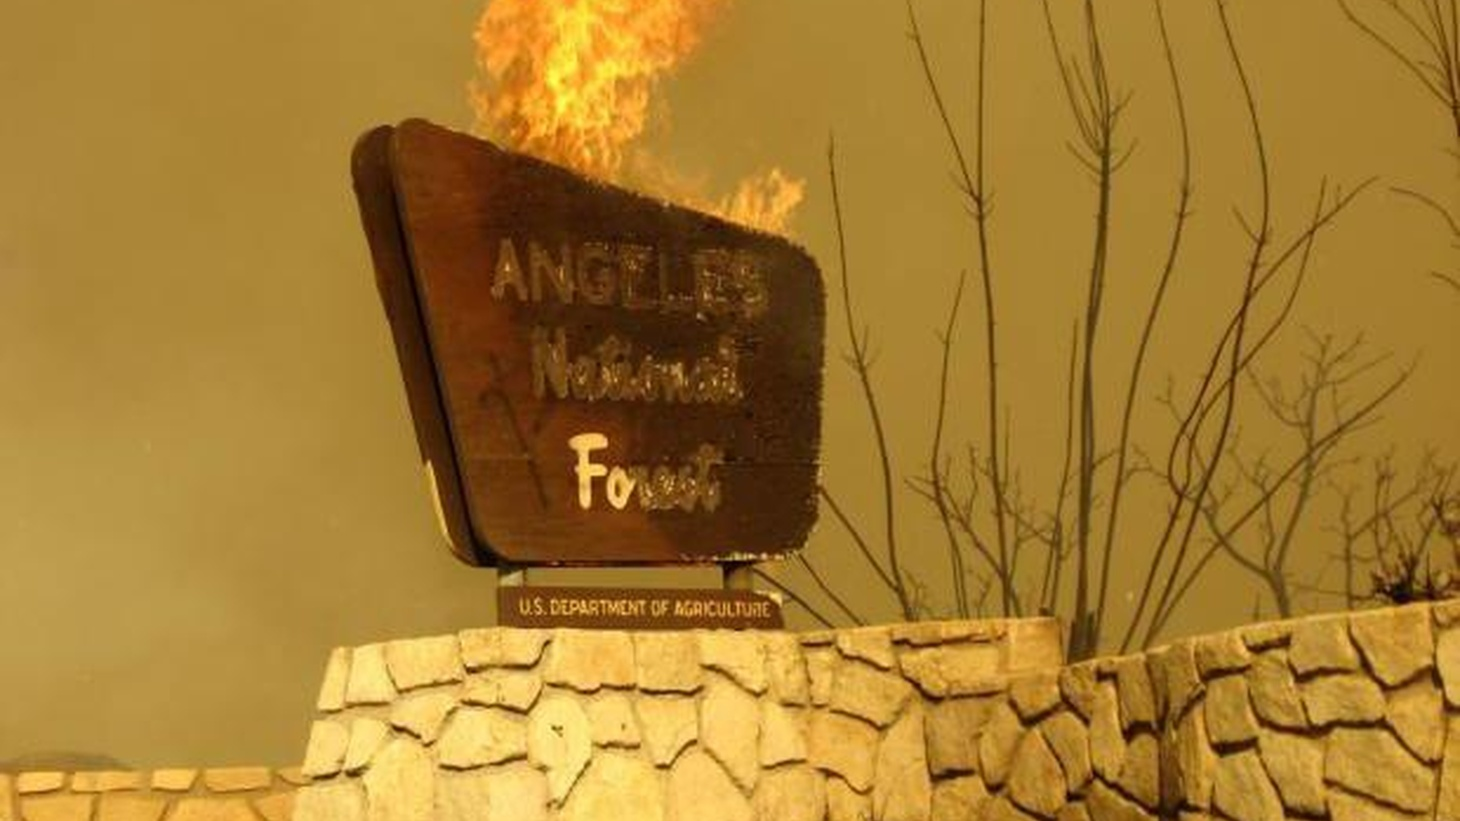 A cooling trend in this weekend's weather forecast is the first realpiece of good news since fires began to dominate life here more than aweek ago. The fire still sweeping through the Angeles National Forest has been a monster, atmospherically and historically...